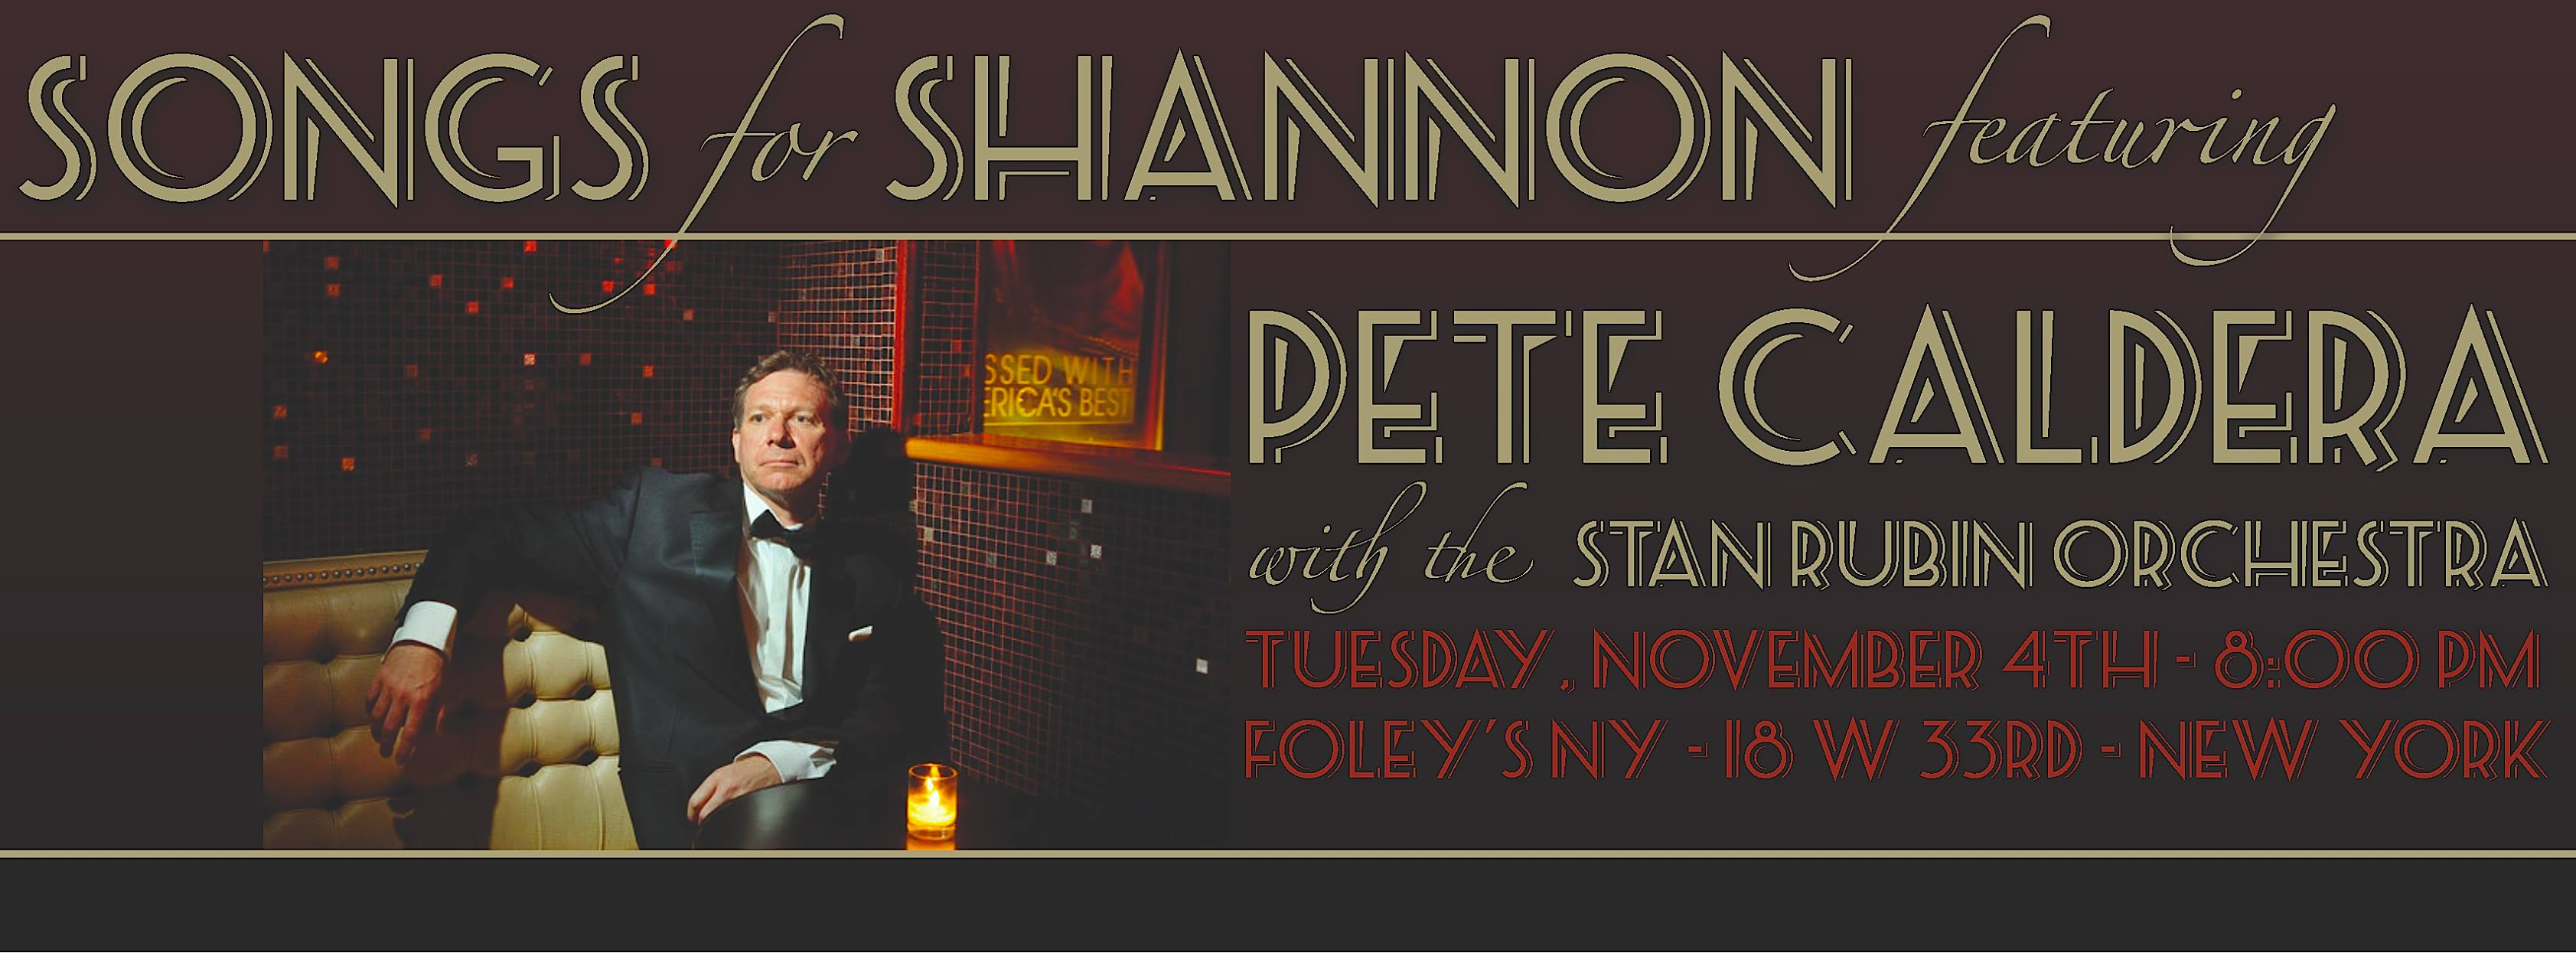 Songs for Shannon Benefit at Foley's - MurphGuide: NYC Bar Guide